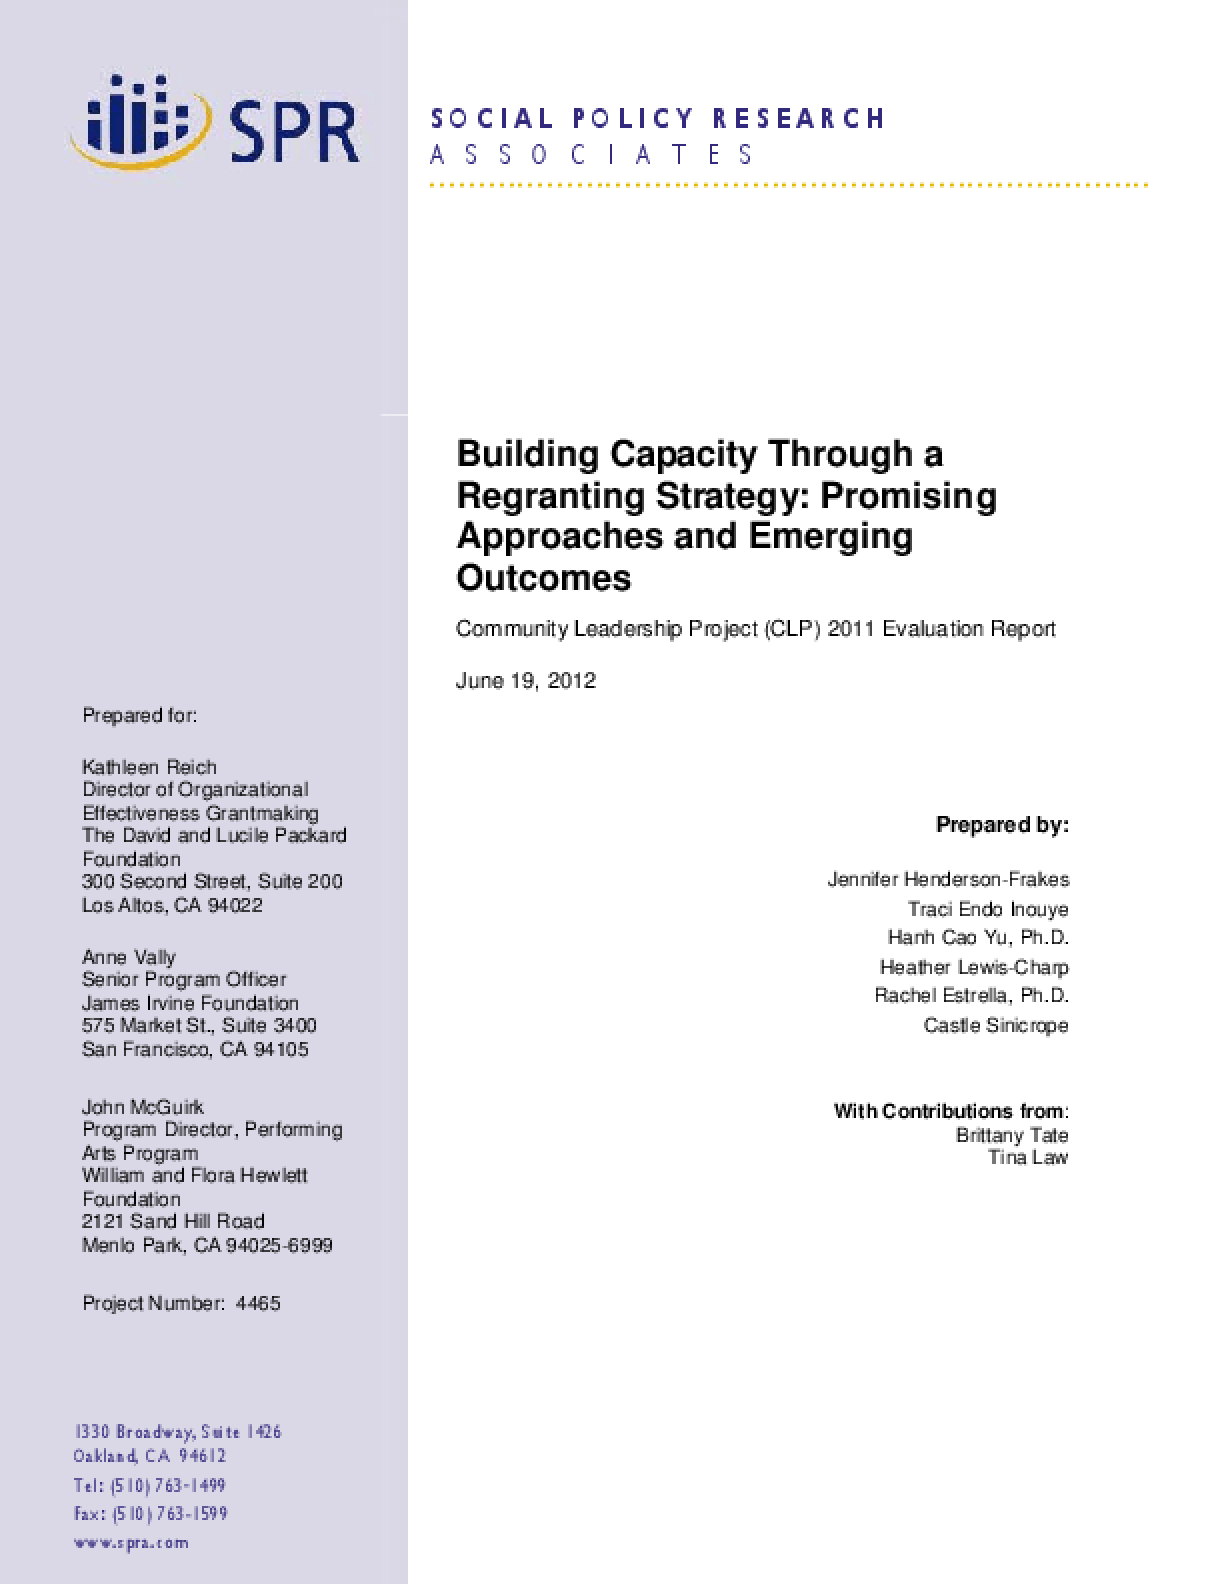 Building Capacity Through a Regranting Strategy: Promising Approaches and Emerging Outcomes